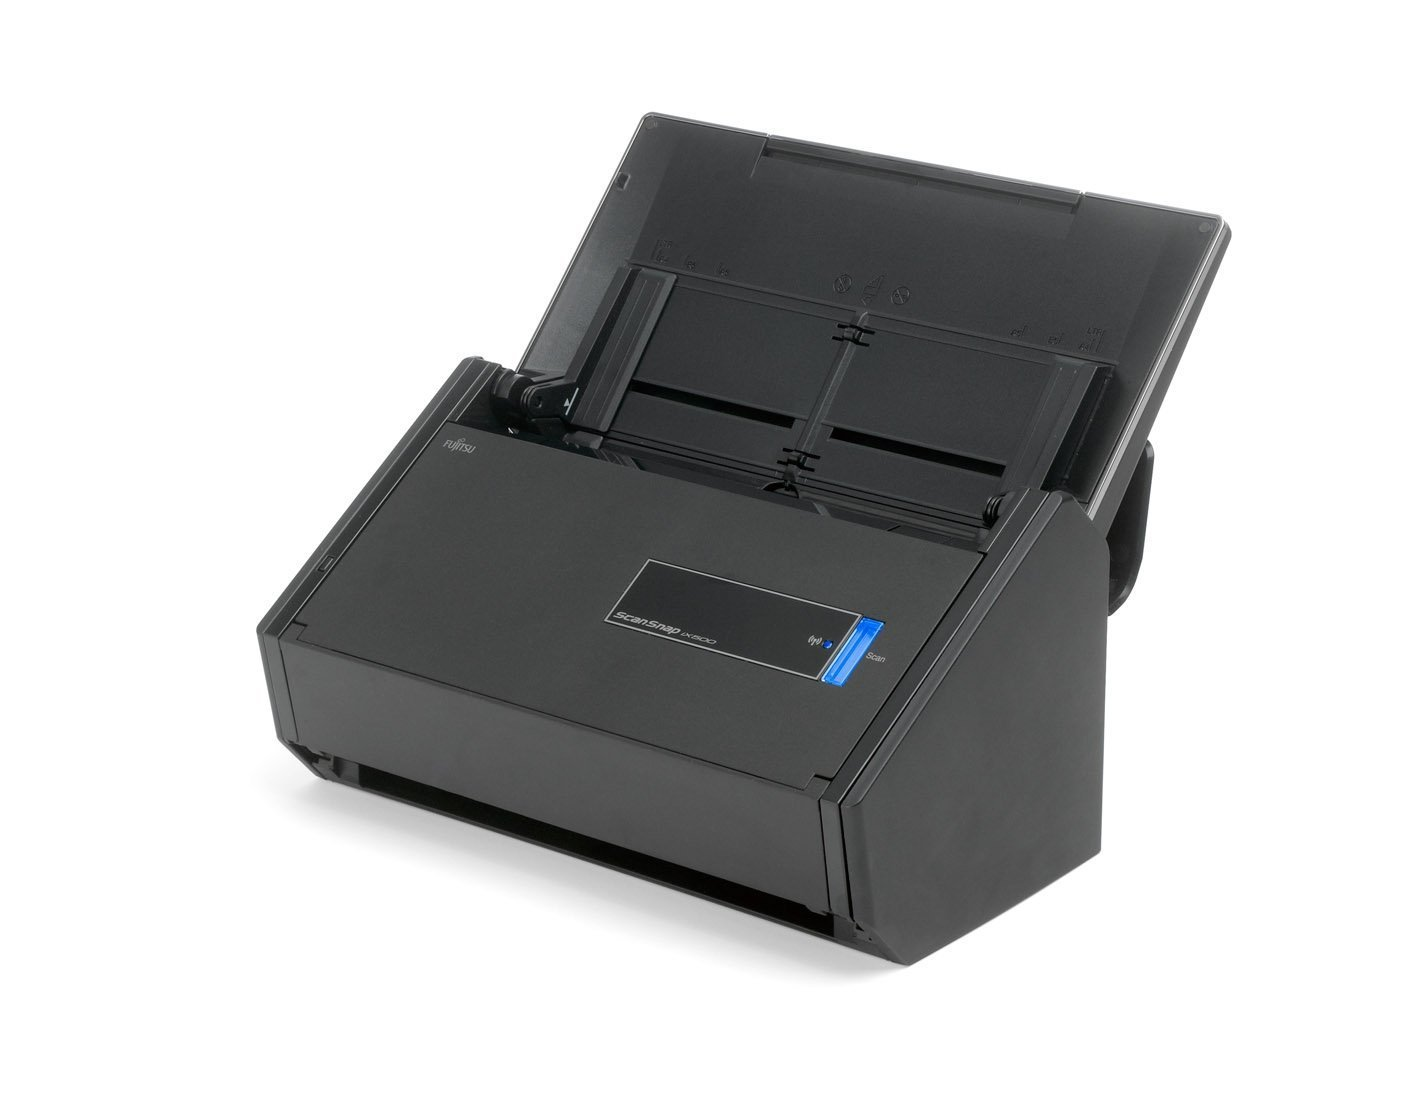 The Best Document Scanner 2